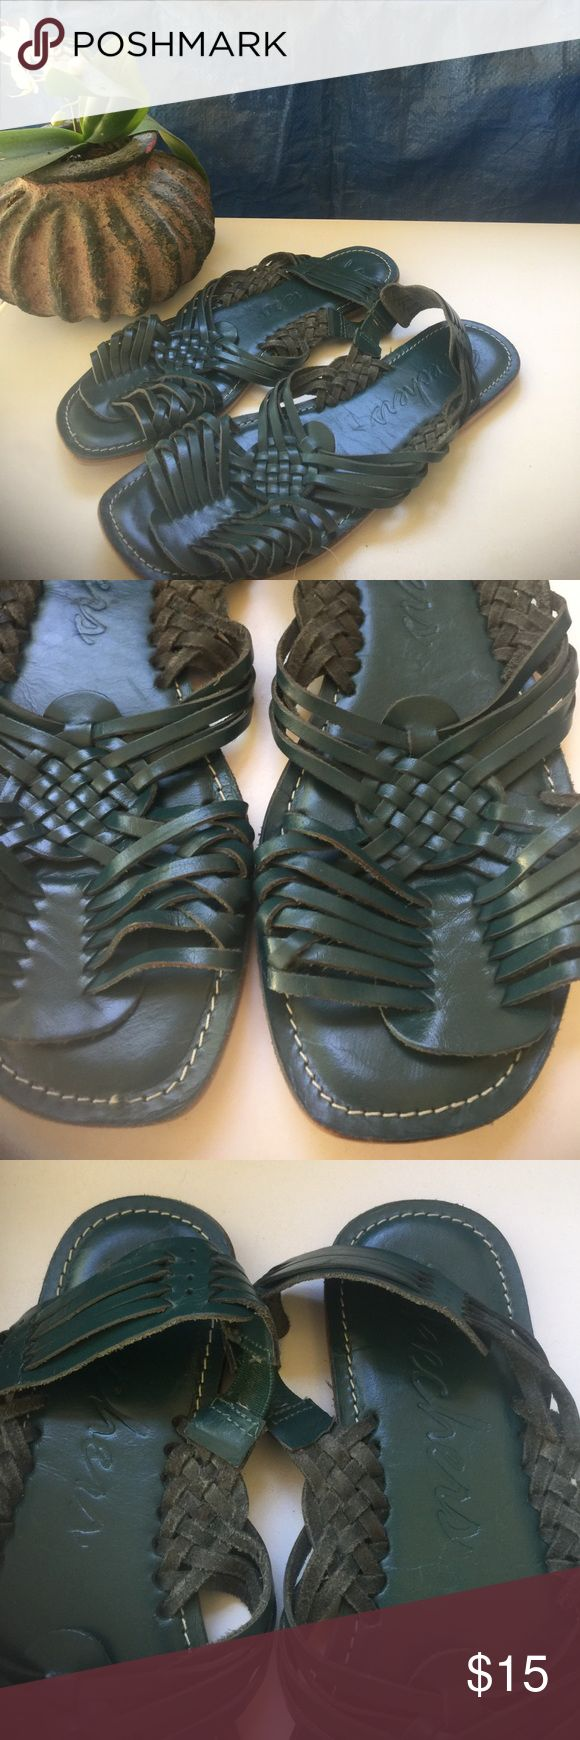 Skechers flat Beautiful and great for spring and summer time! Skechers Shoes Slippers